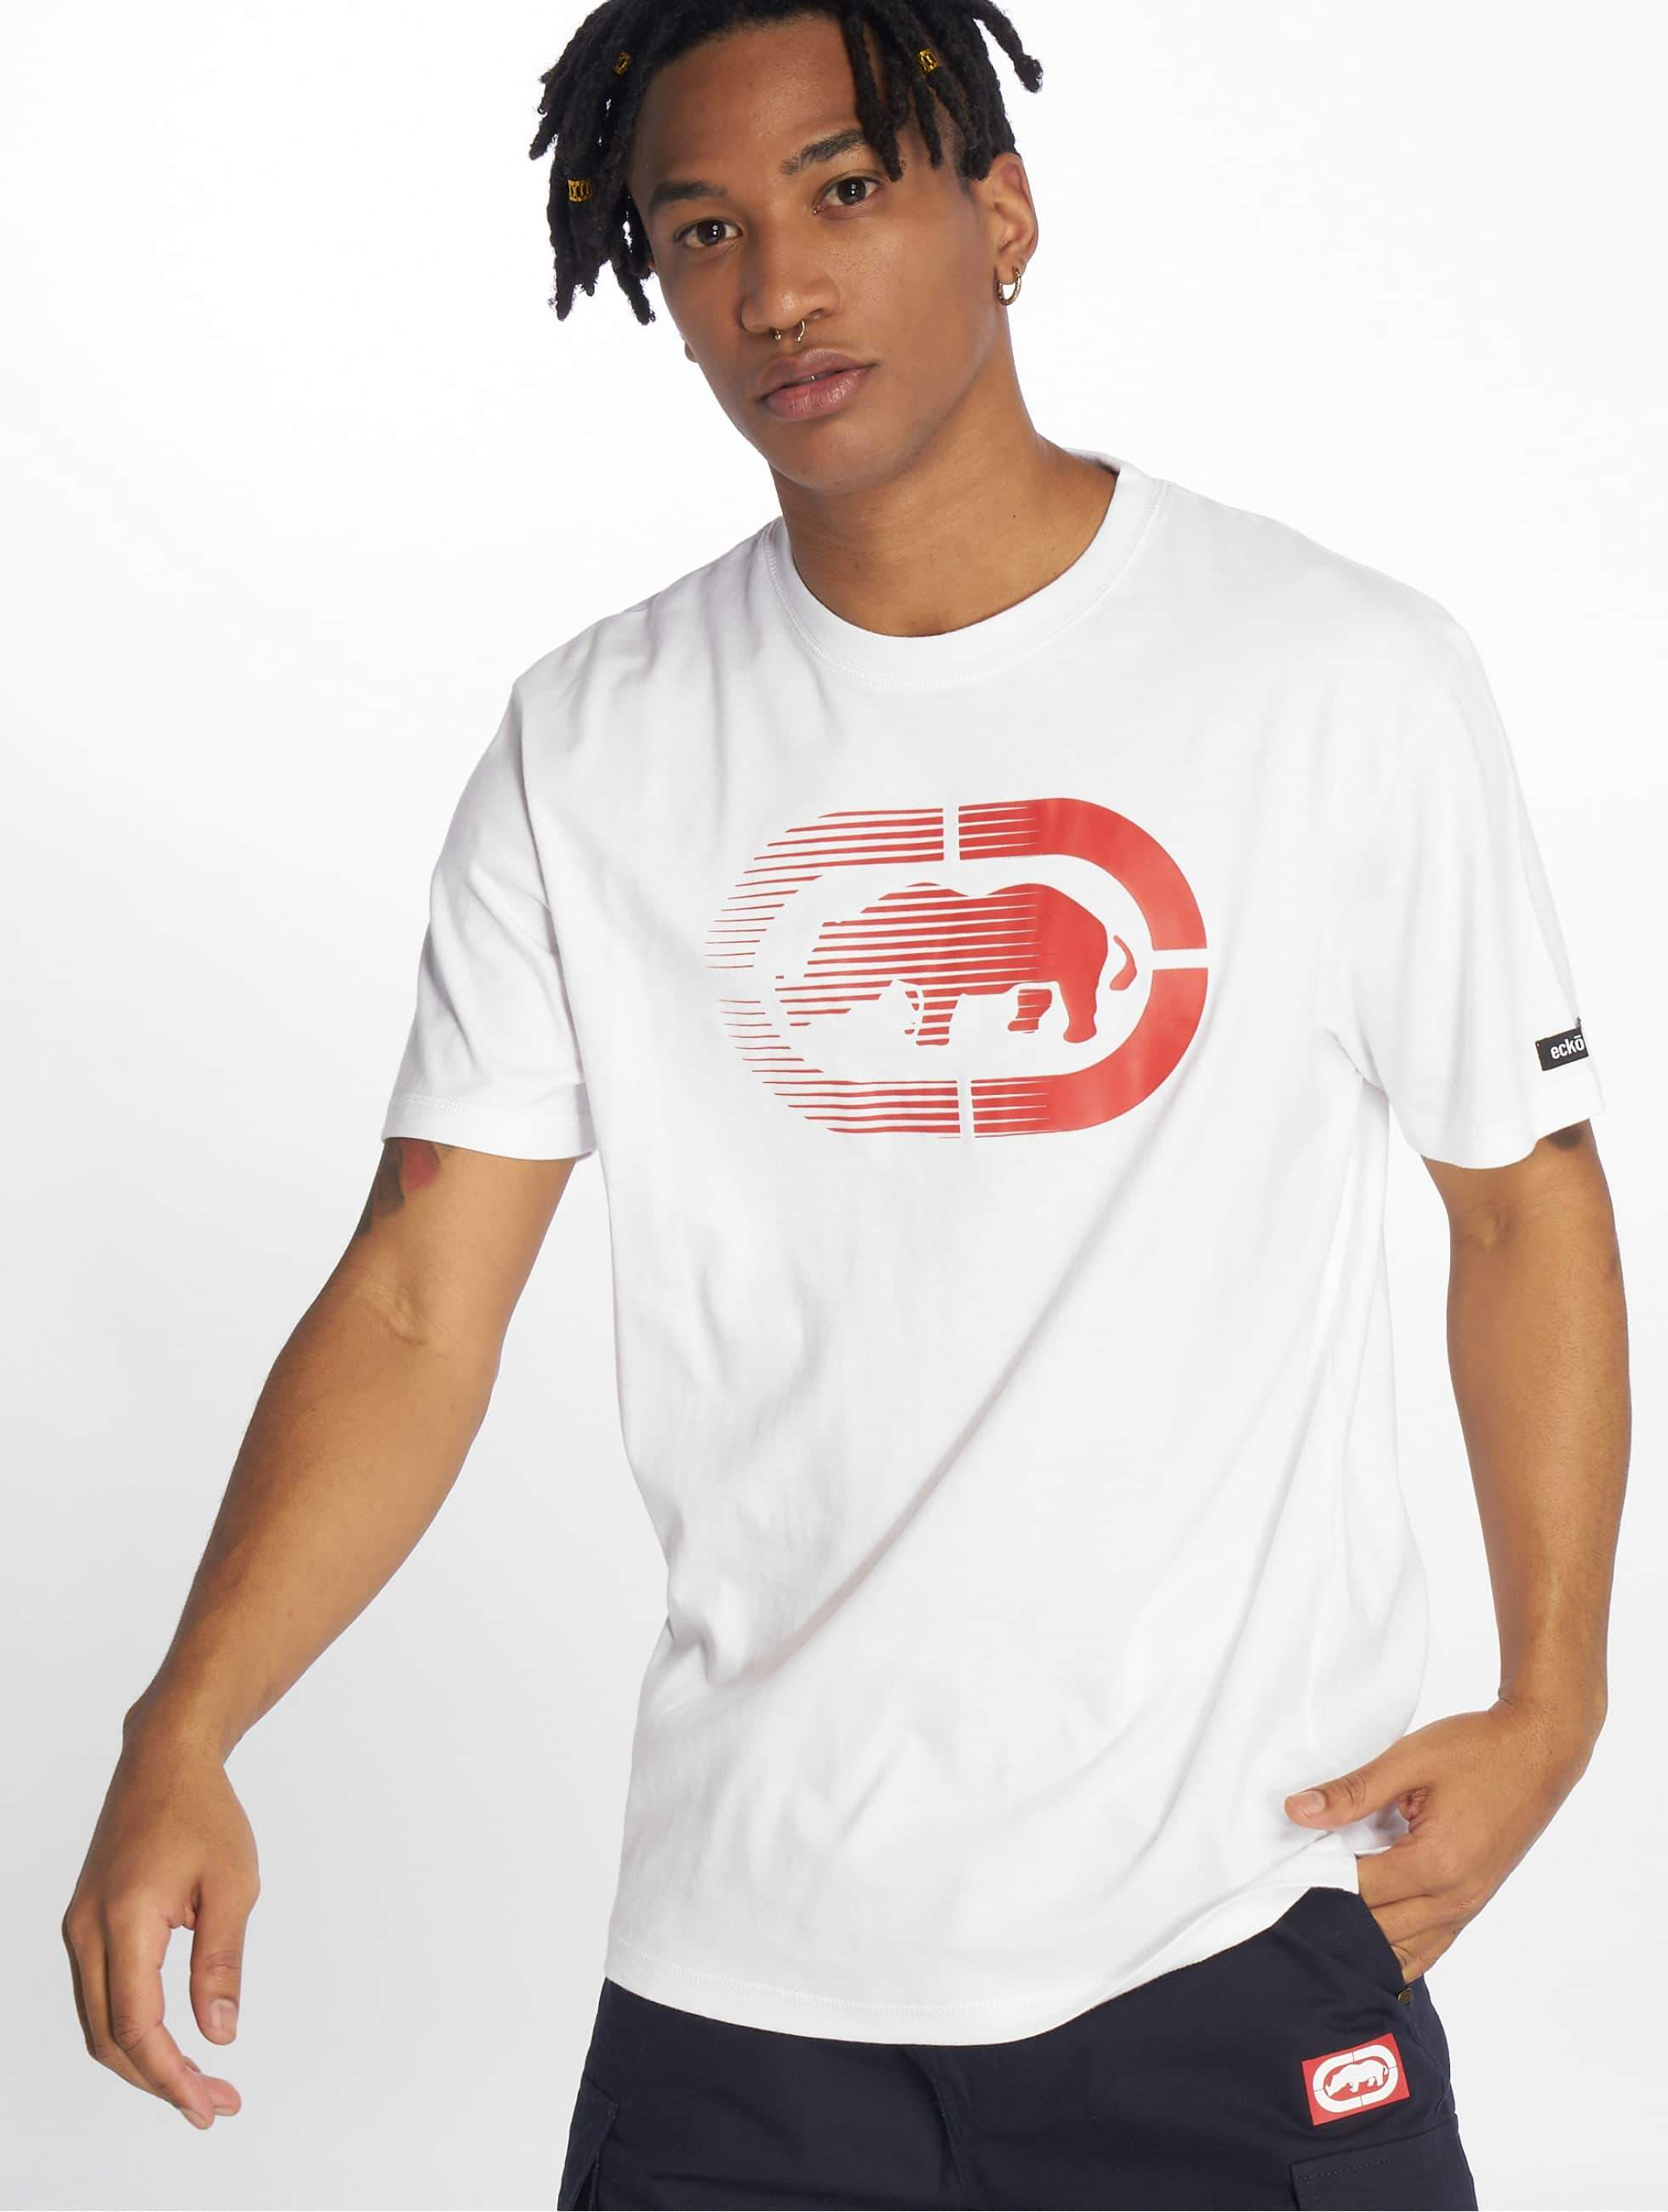 Ecko Unltd. / T-Shirt 5050 in white L